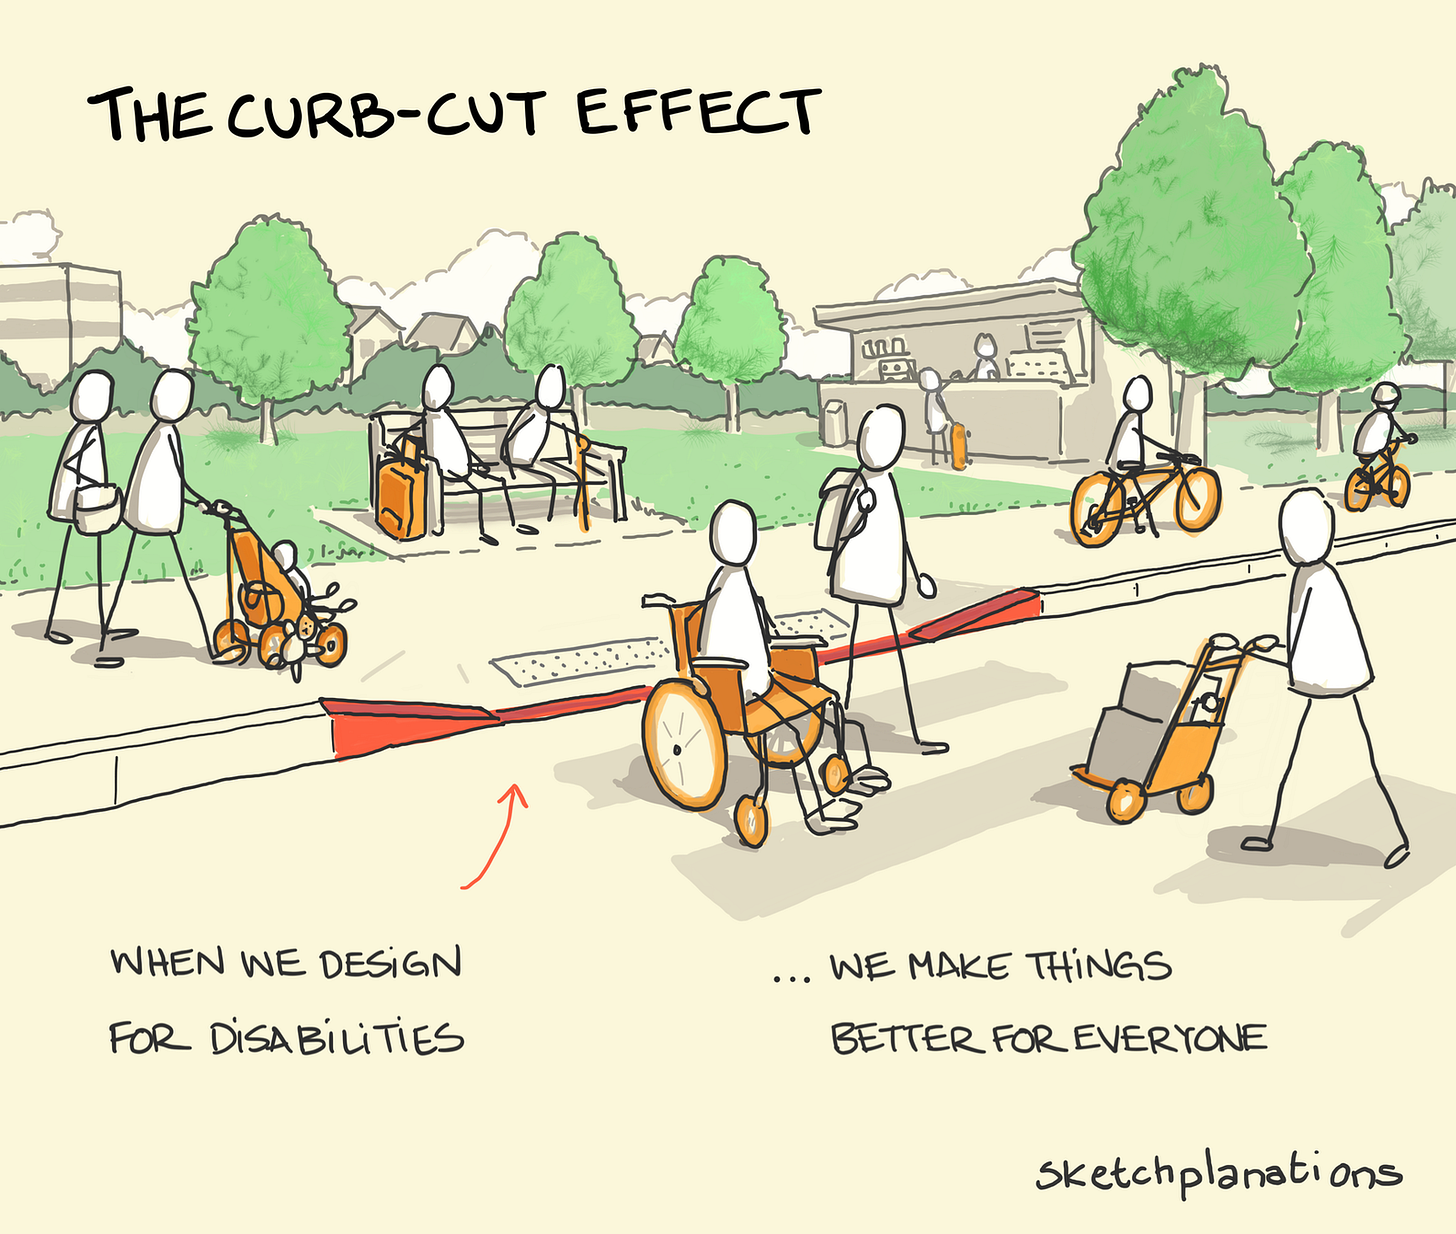 The curb-cut effect - Sketchplanations